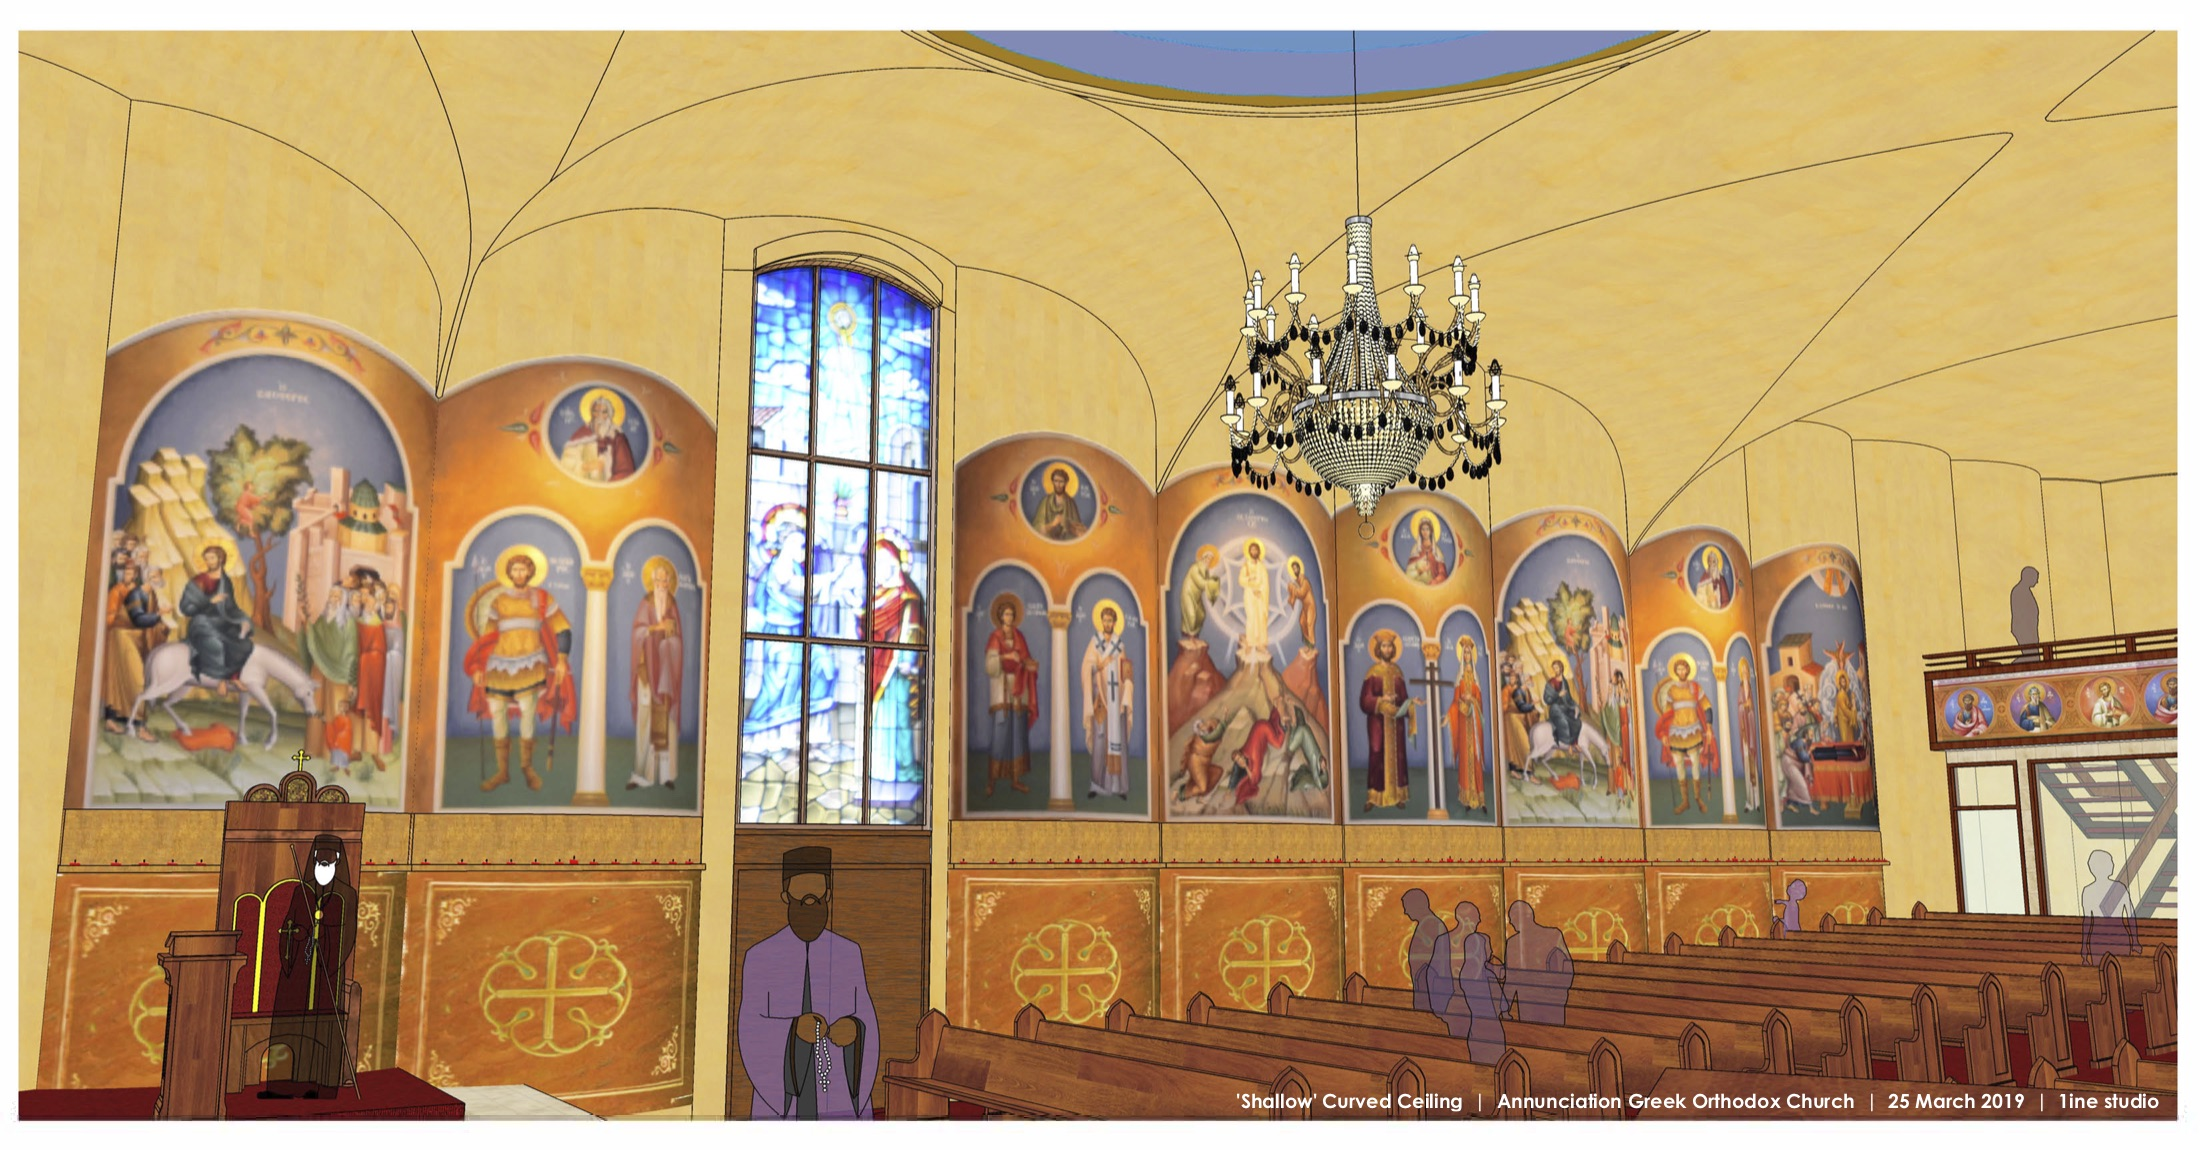 Home | Annunciation Greek Orthodox Church